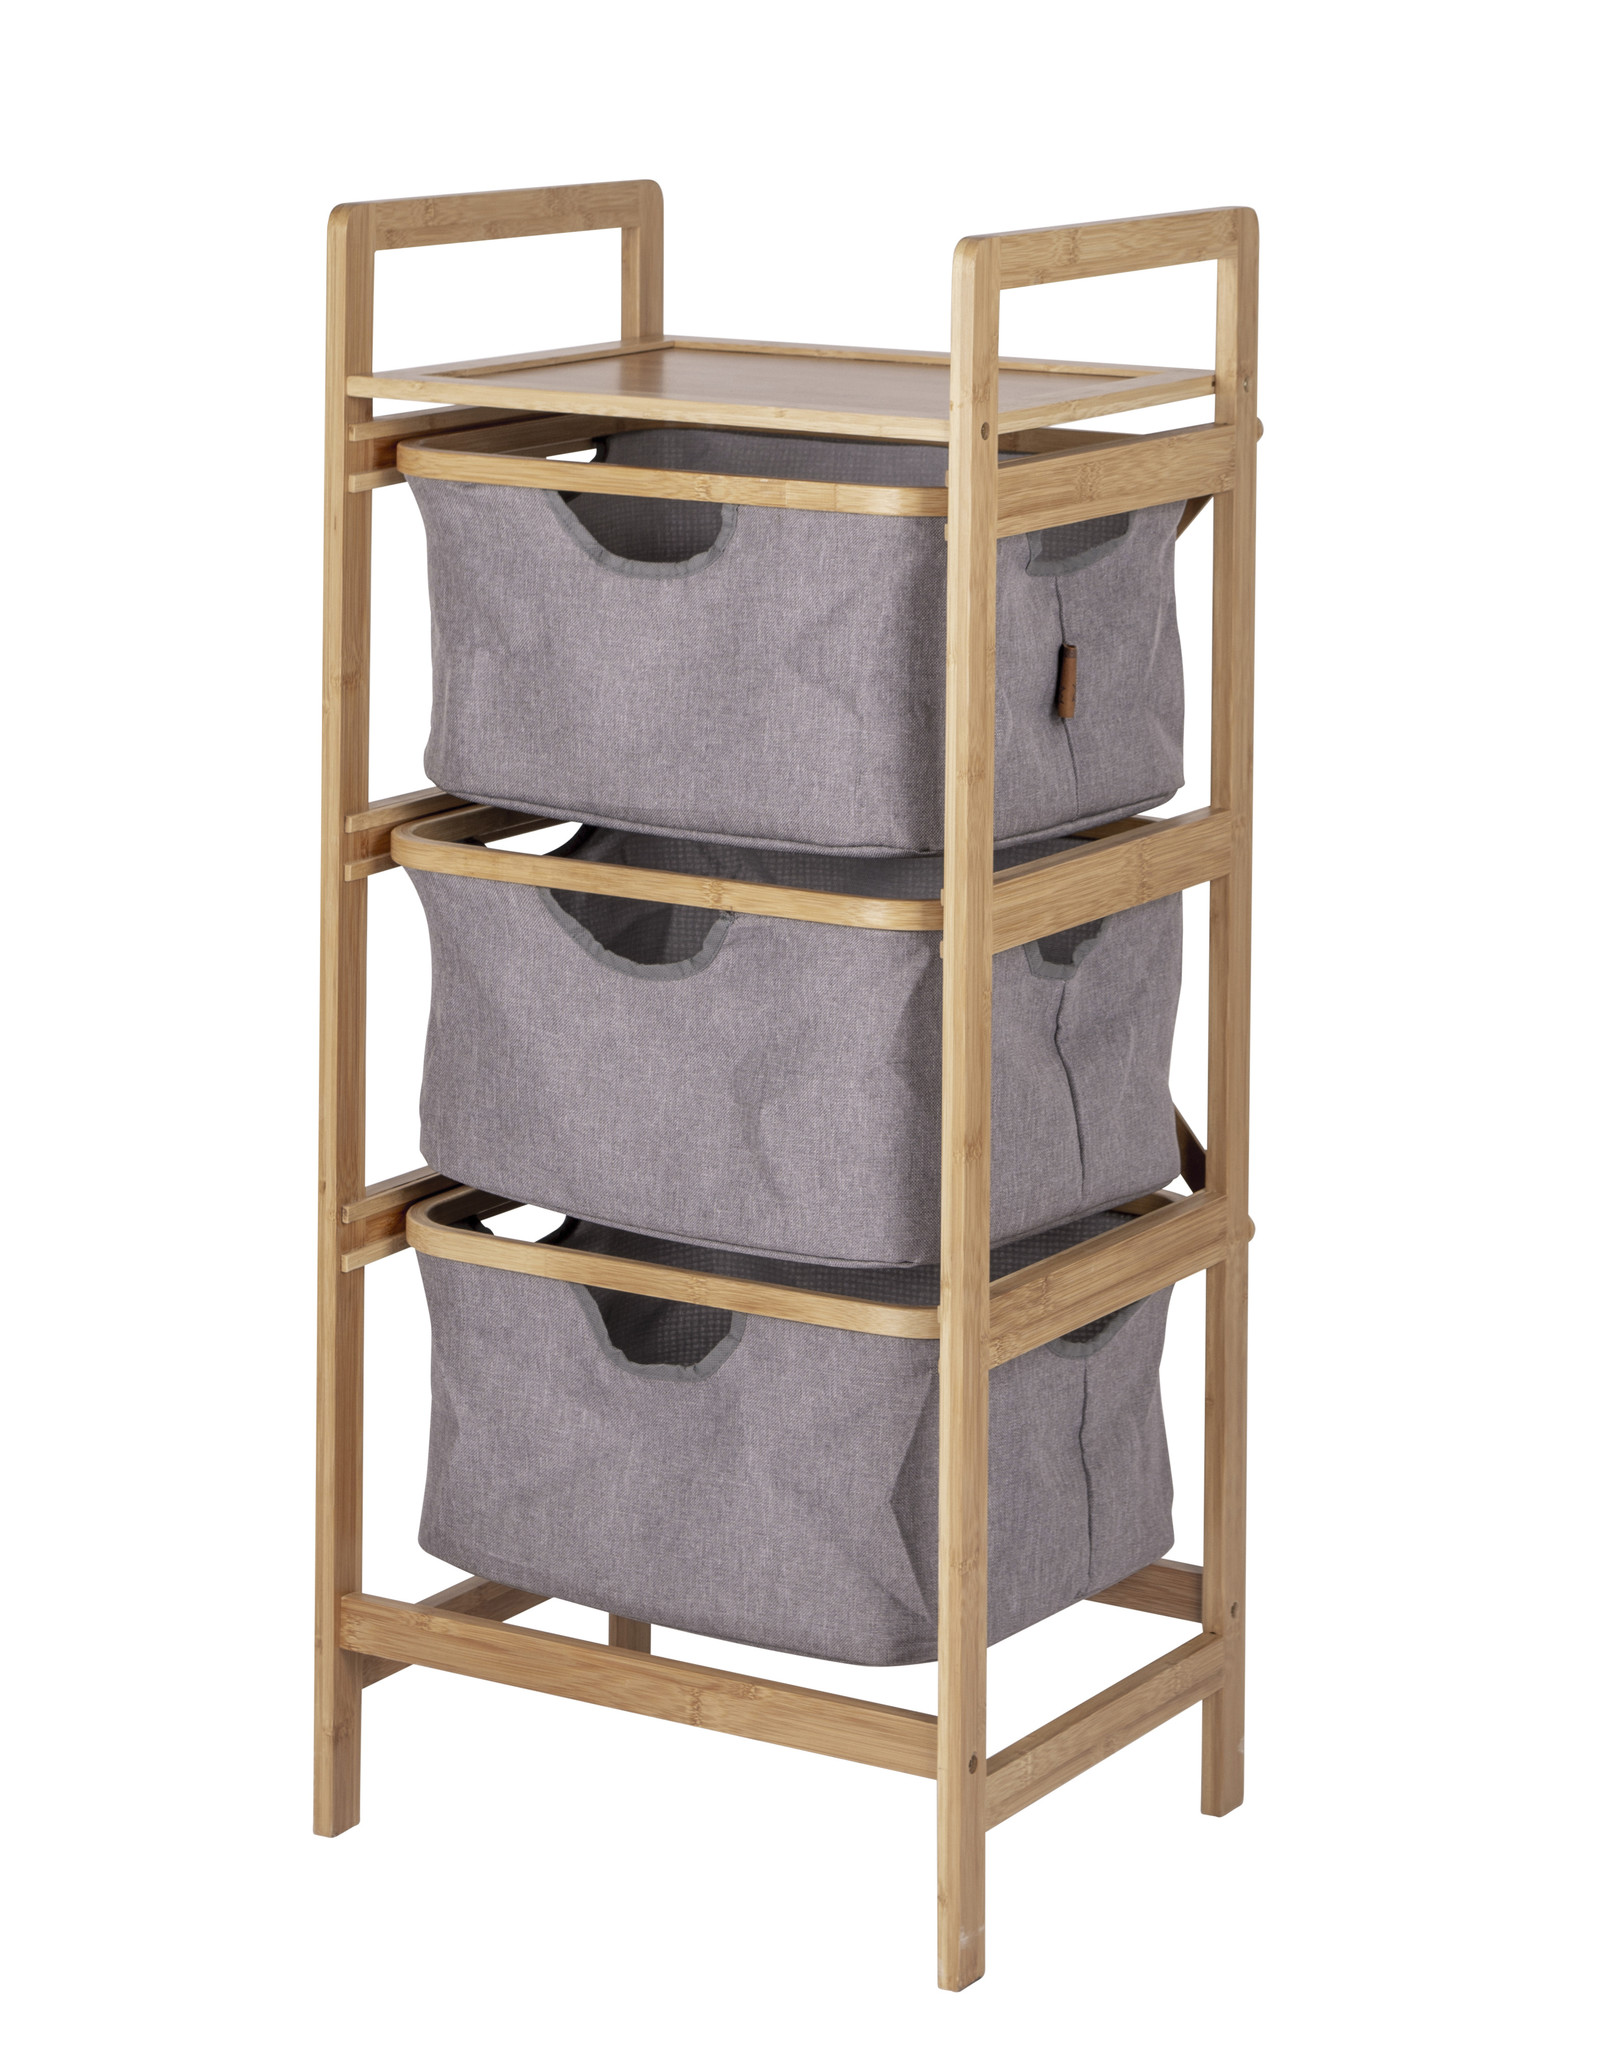 Bo-Camp Selsdon kast Urban outdoor collection